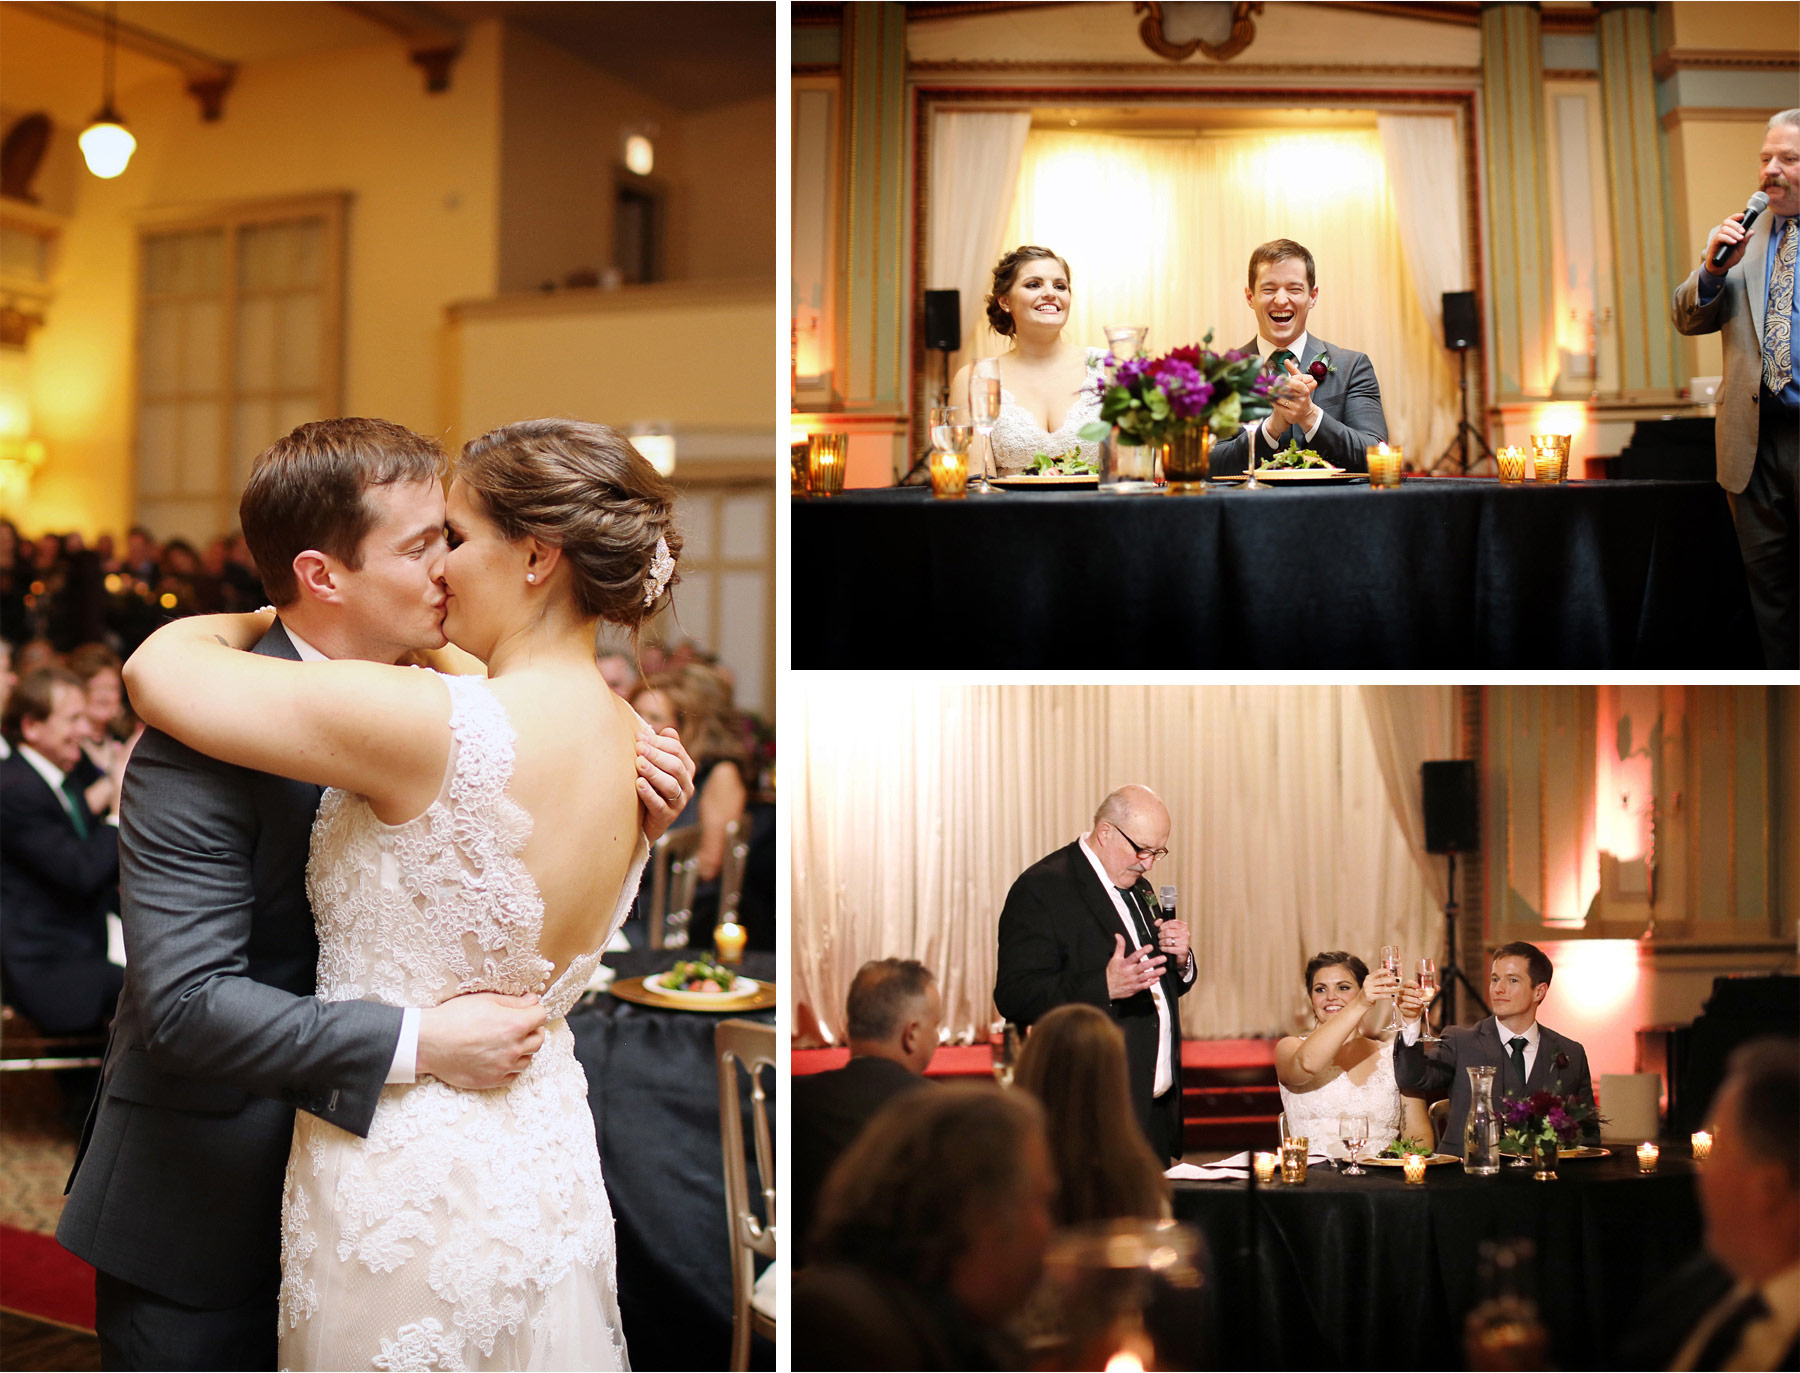 20-Chicago-Illinois-Wedding-Photographer-by-Andrew-Vick-Photography-Winter-Stan-Mansion-Reception-Bride-Groom-Kiss-Father-Guests-Laughter-Champagne-Speeches-Colleen-and-Mike.jpg